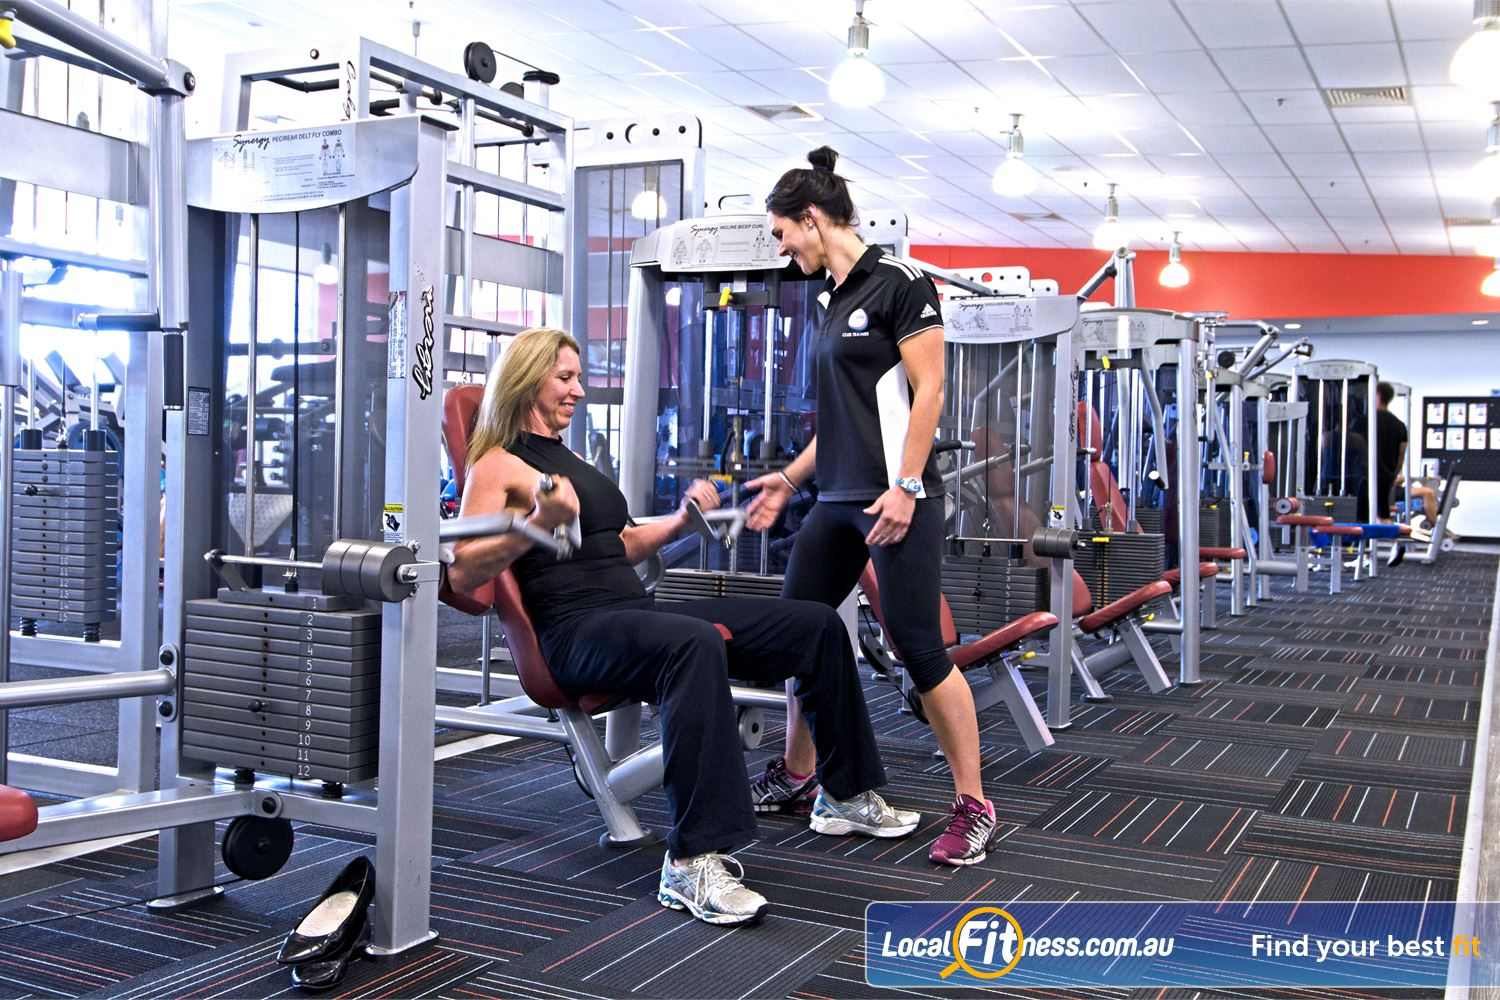 Goodlife Health Clubs Chermside Chermside gym instructors can tailor a weight-loss and strength training program to suit you.